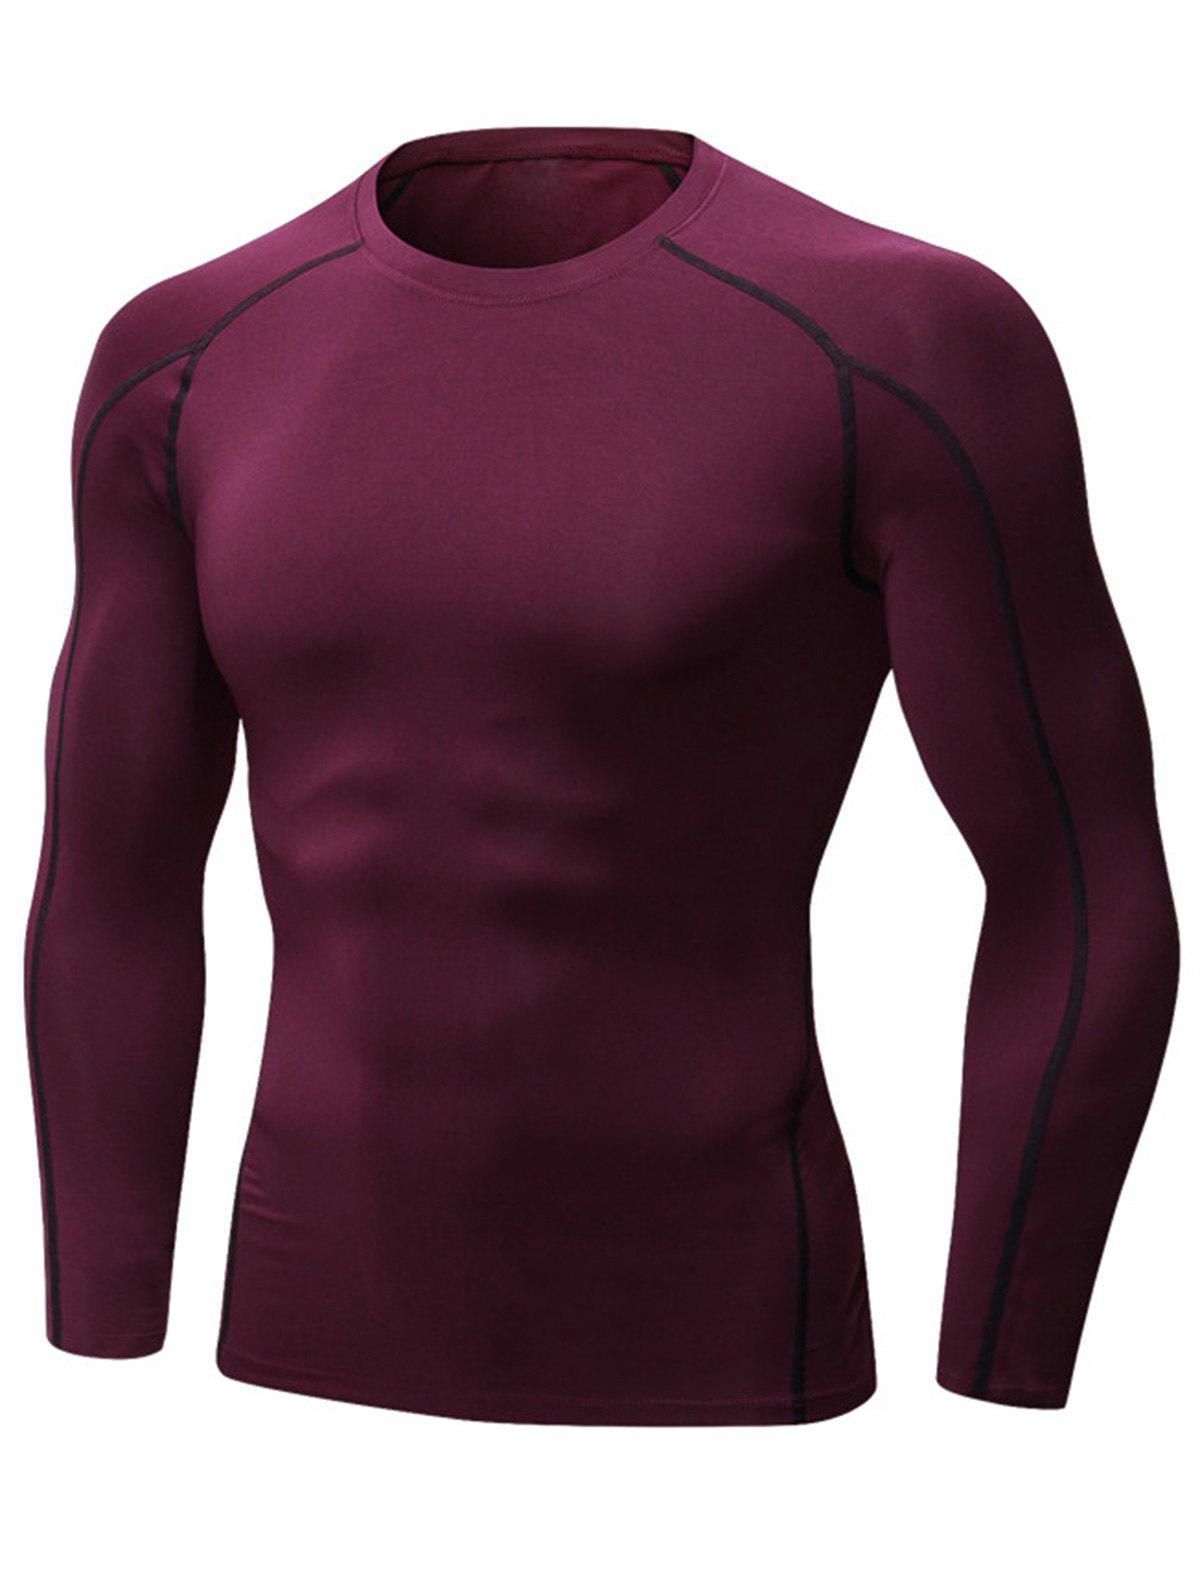 Stretchy Quick Dry Suture Long Sleeve T-shirt - WINE RED XL